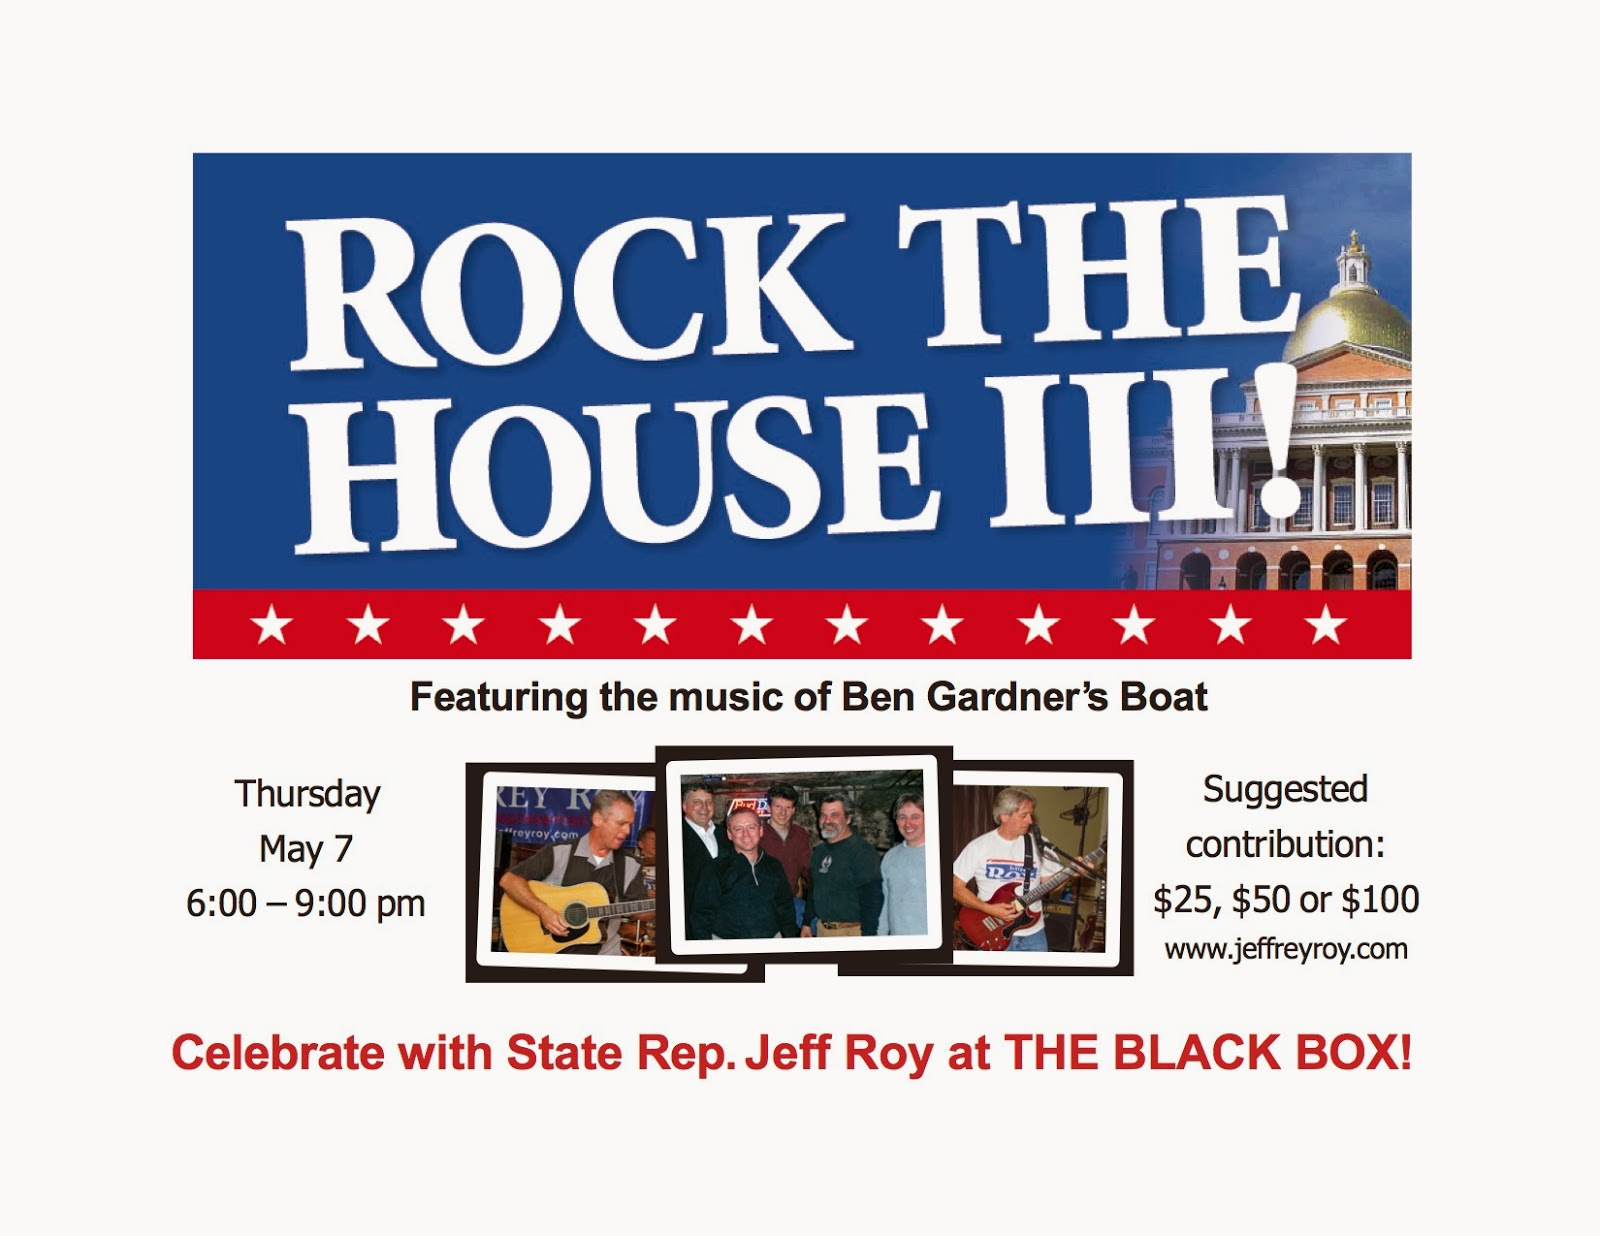 Rock the House III - May 7 at THE BLACK BOX